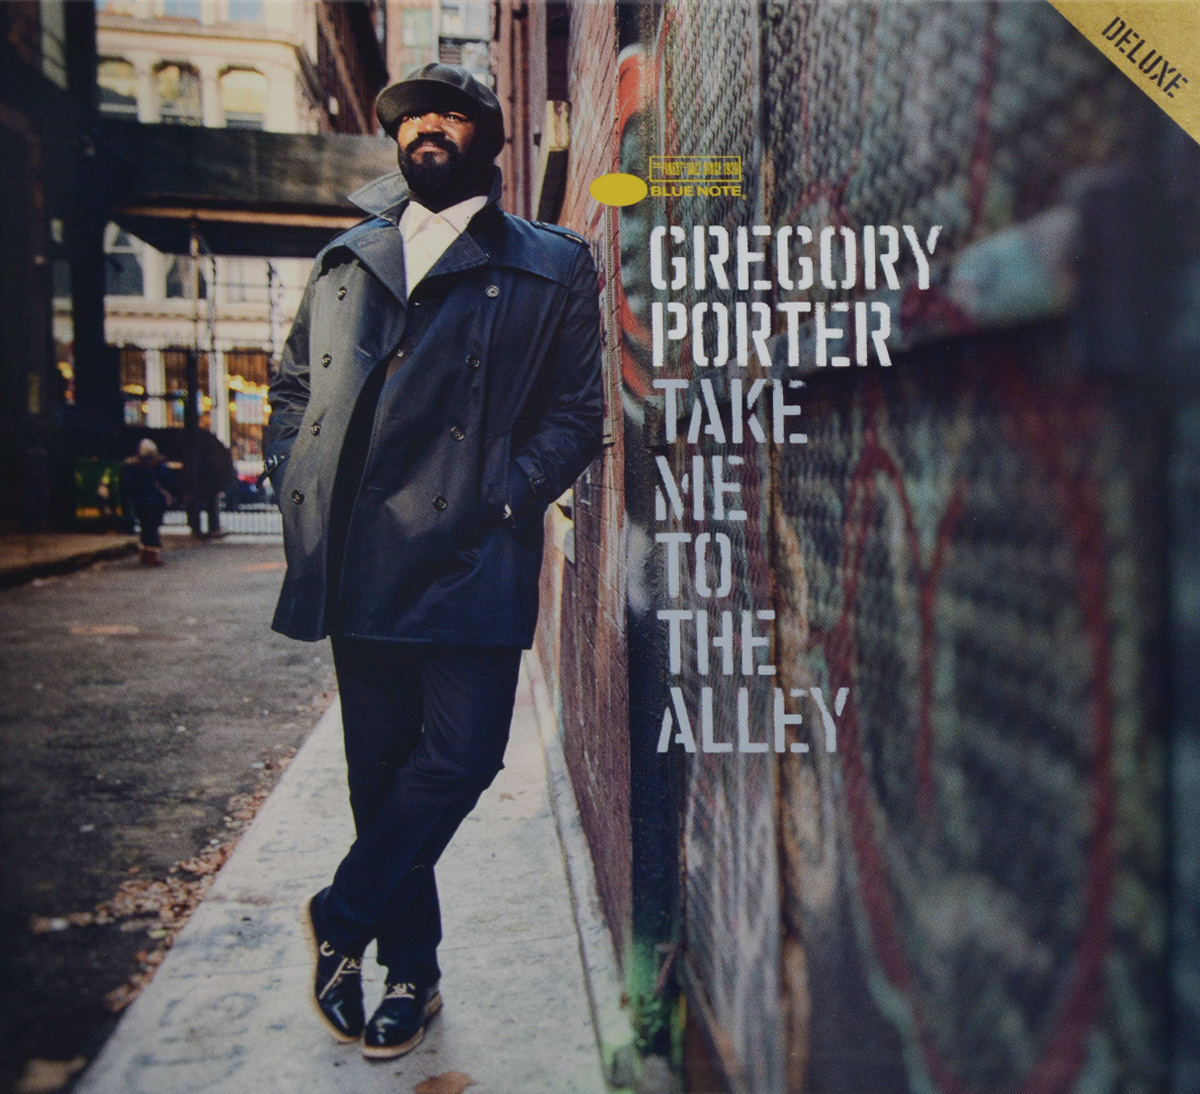 Грегори Портер Gregory Porter. Take Me To The Alley. Deluxe Edition (CD + DVD) грегори портер gregory porter take me to the alley deluxe edition cd dvd